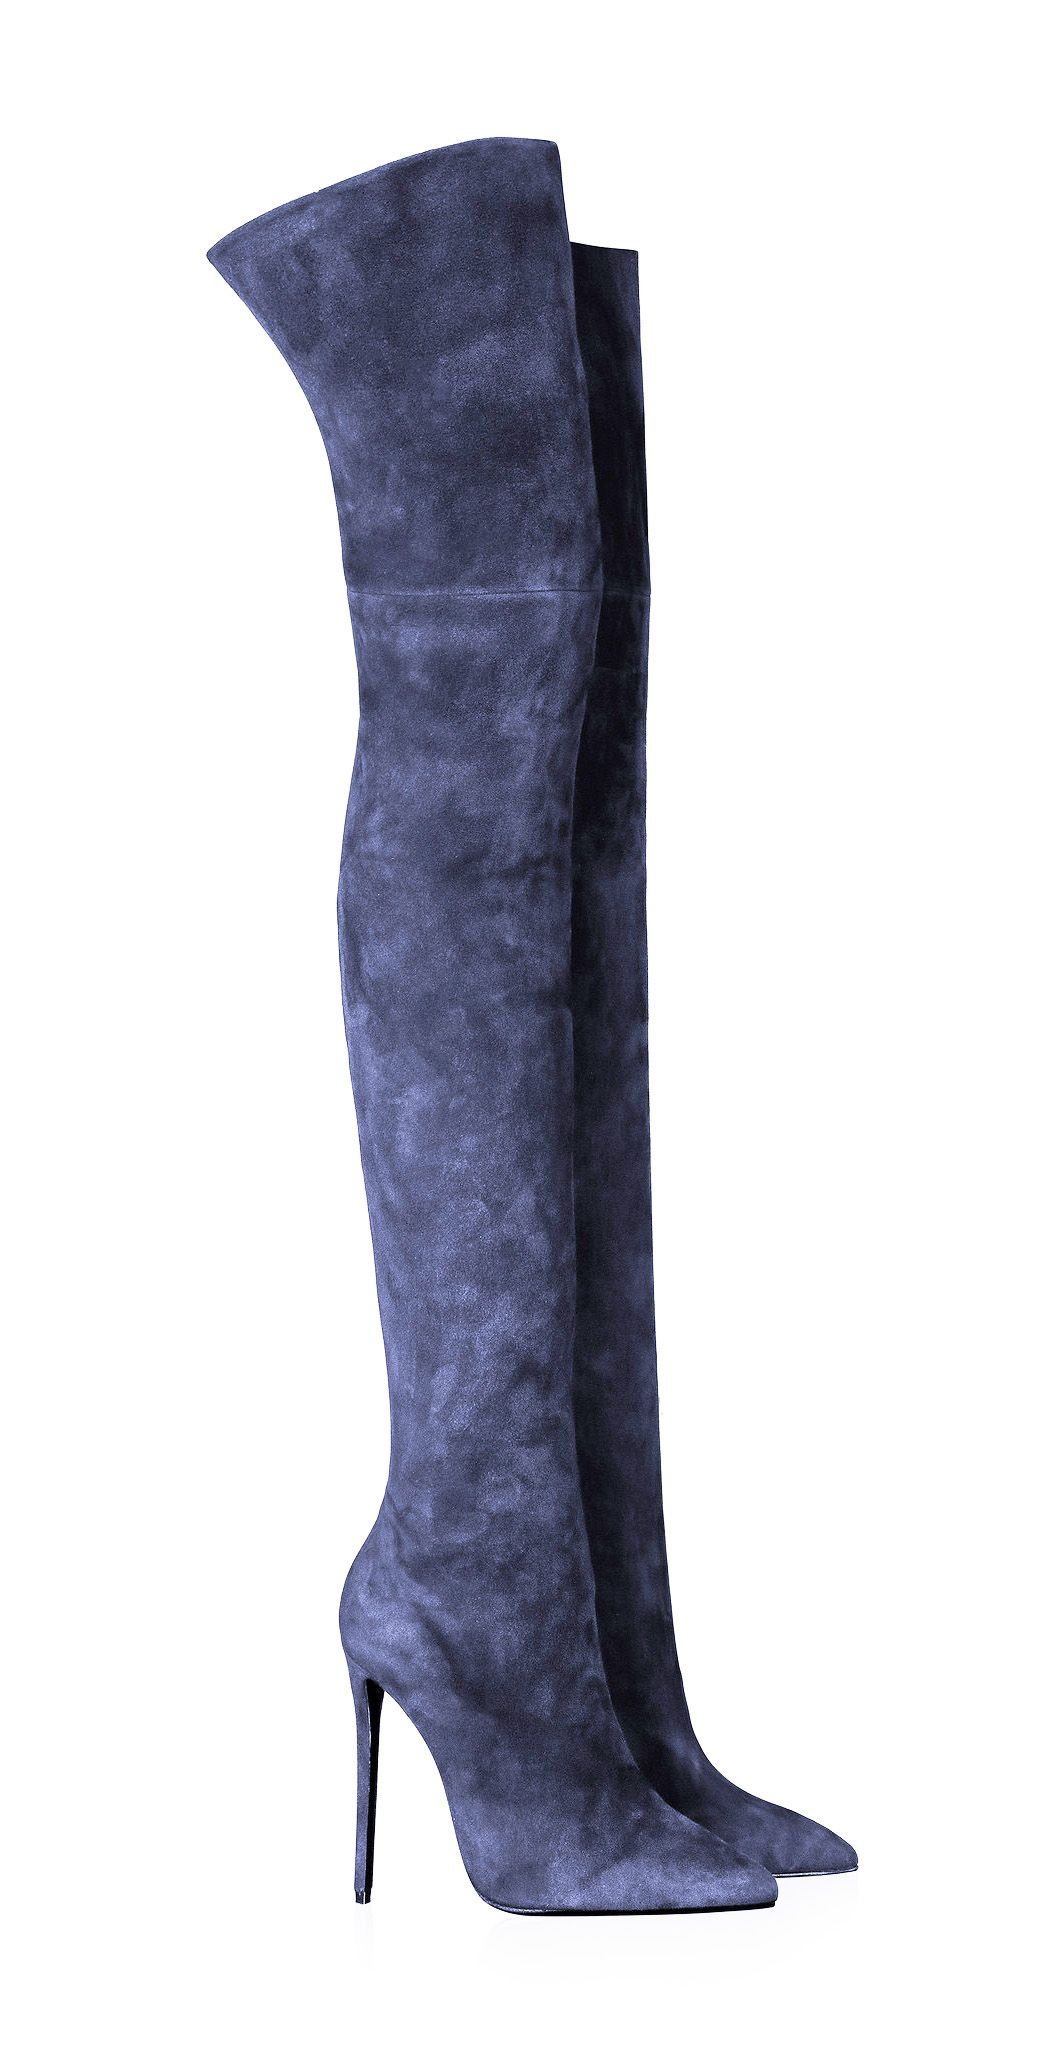 Adela King blue suede thigh high boots | Boots | Pinterest | High ...